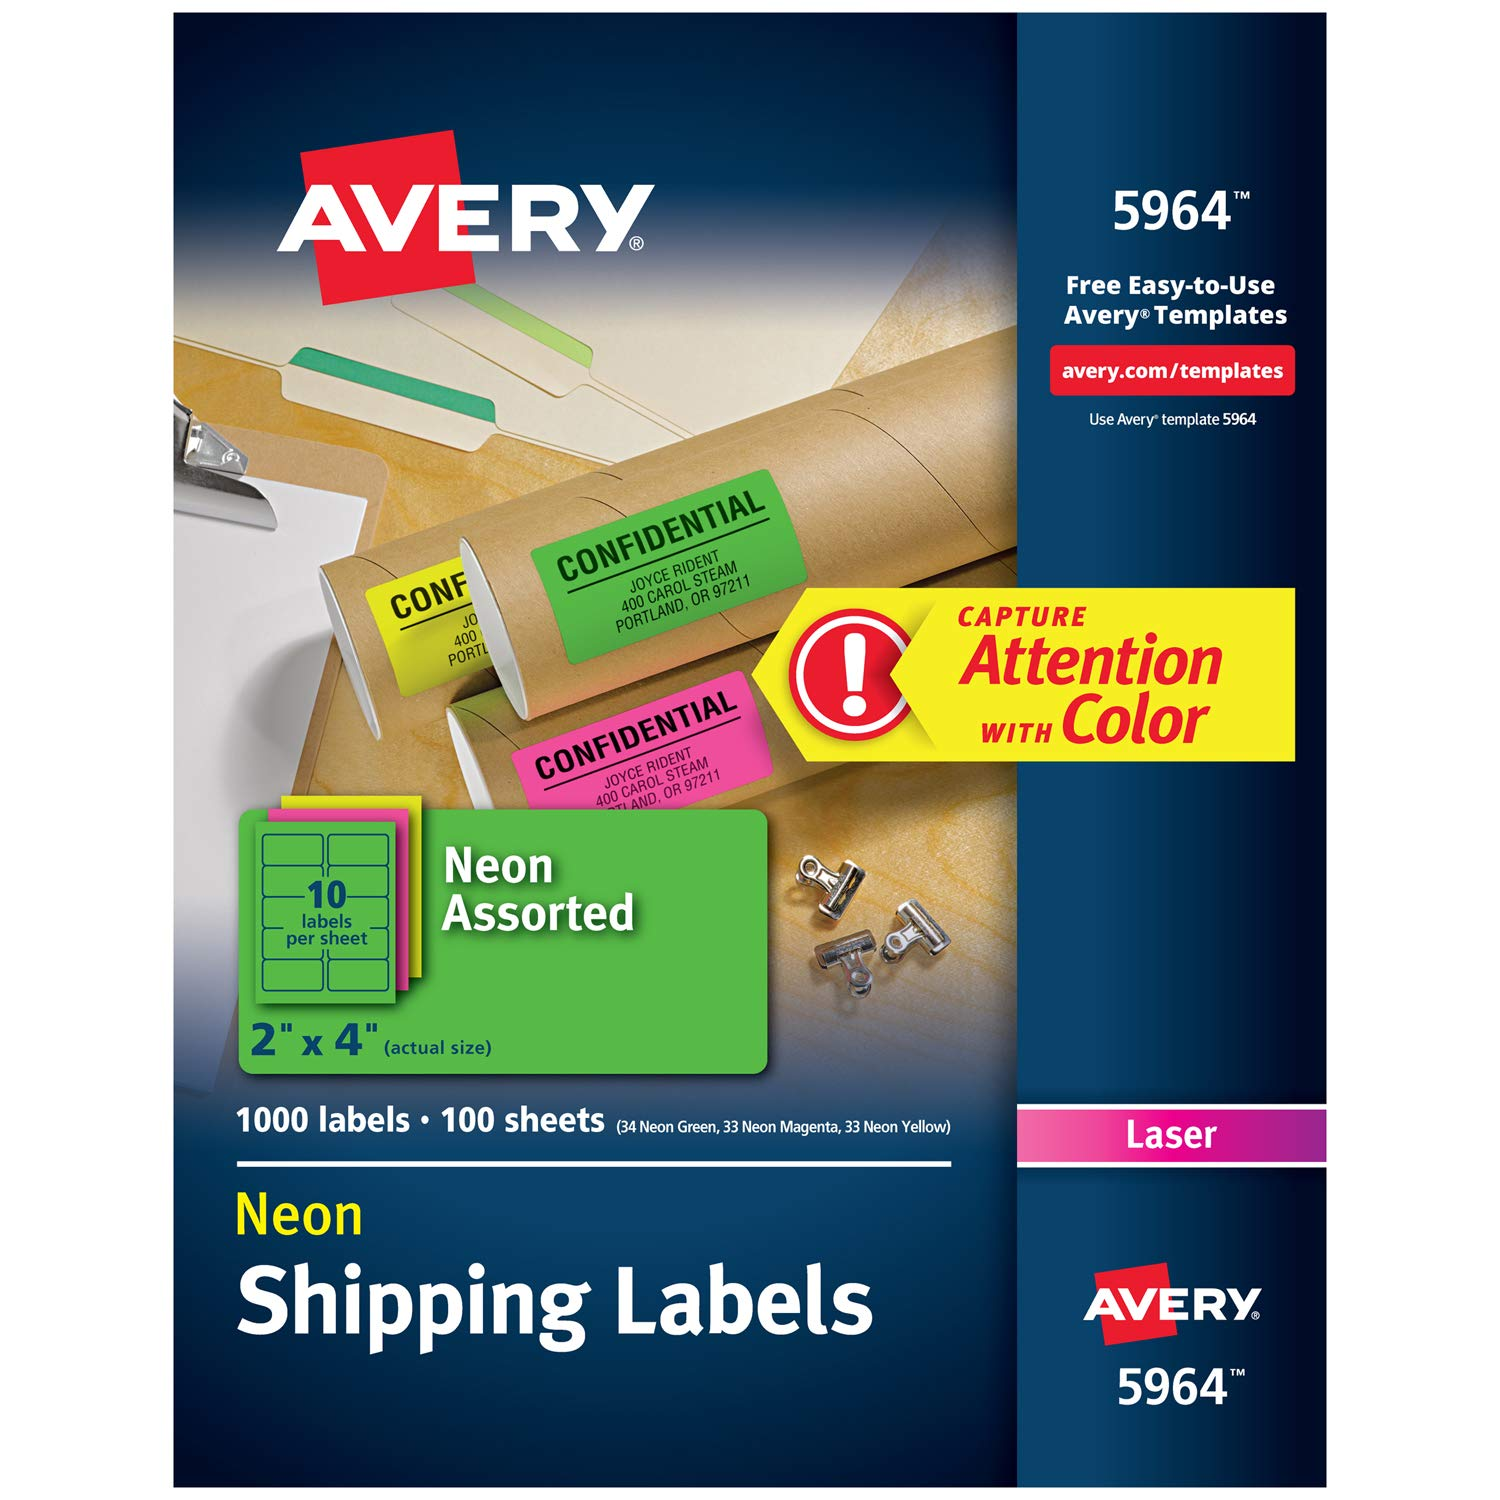 Avery High-Visibility Neon Shipping Labels for Laser Printers 2'' x 4'', Assorted Colors, Box of 1,000 (5964) by AVERY